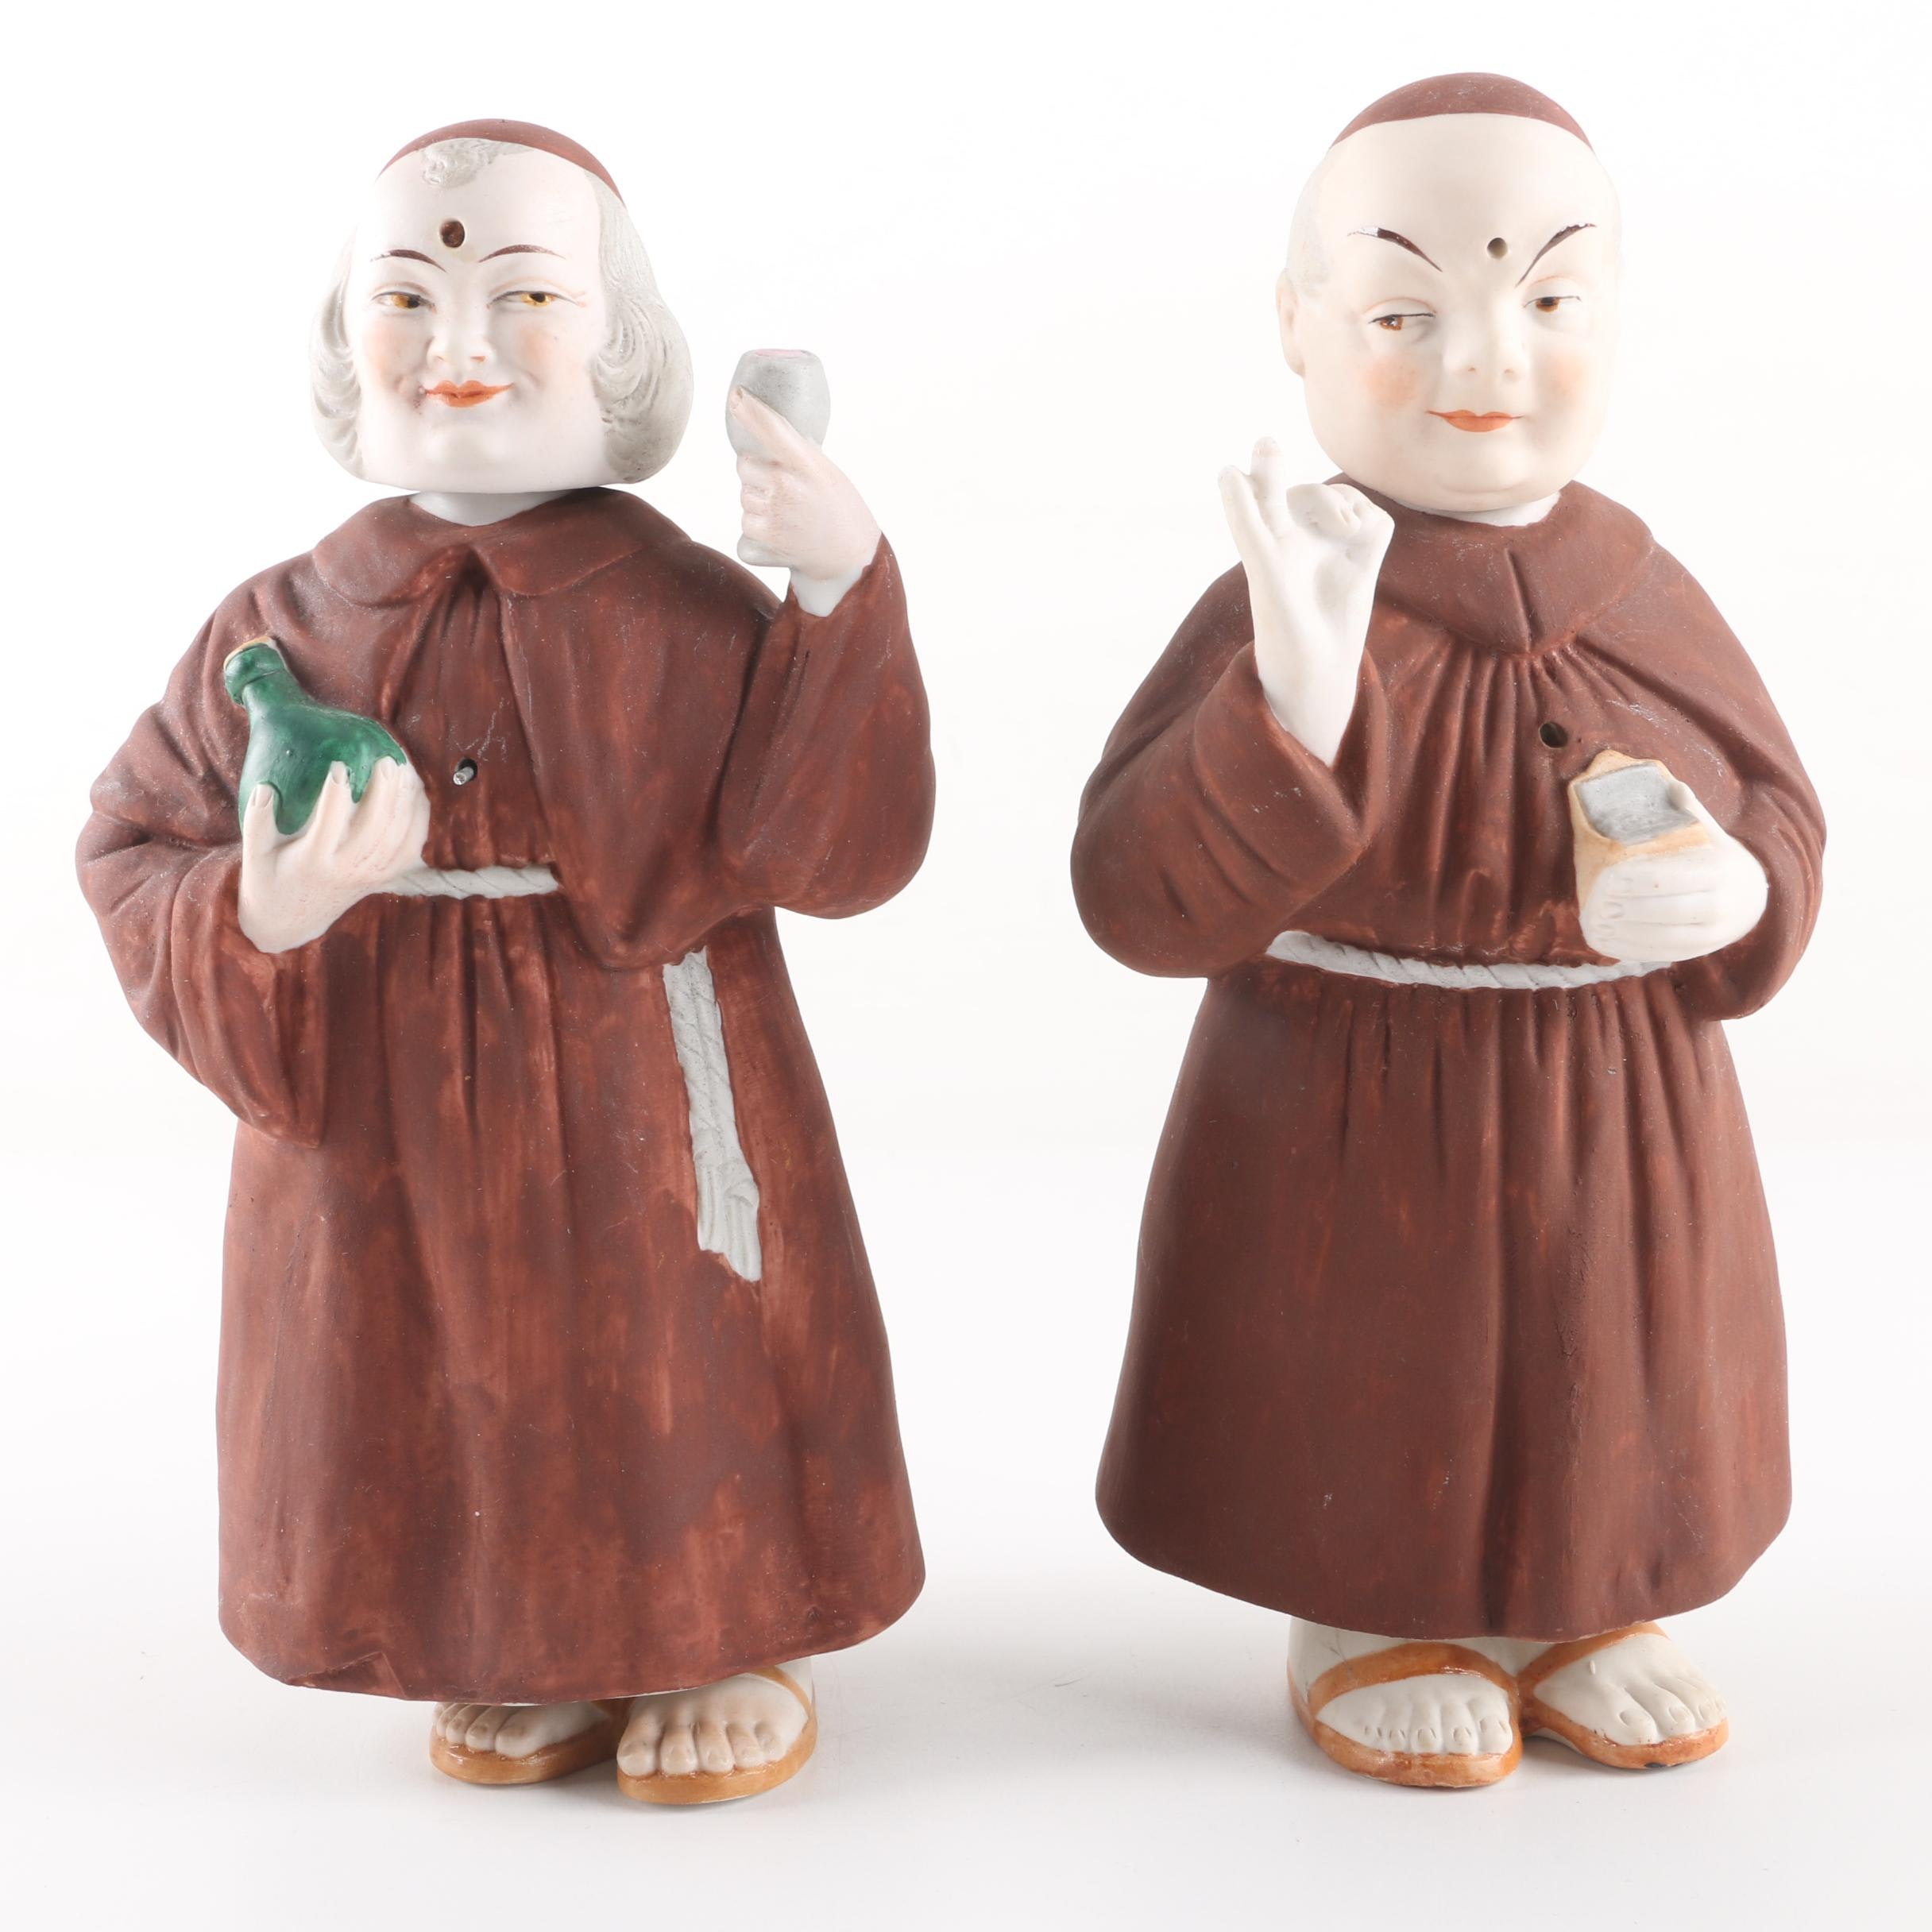 Vintage Swaying Monk Nodder Porcelain Figurines including Kister